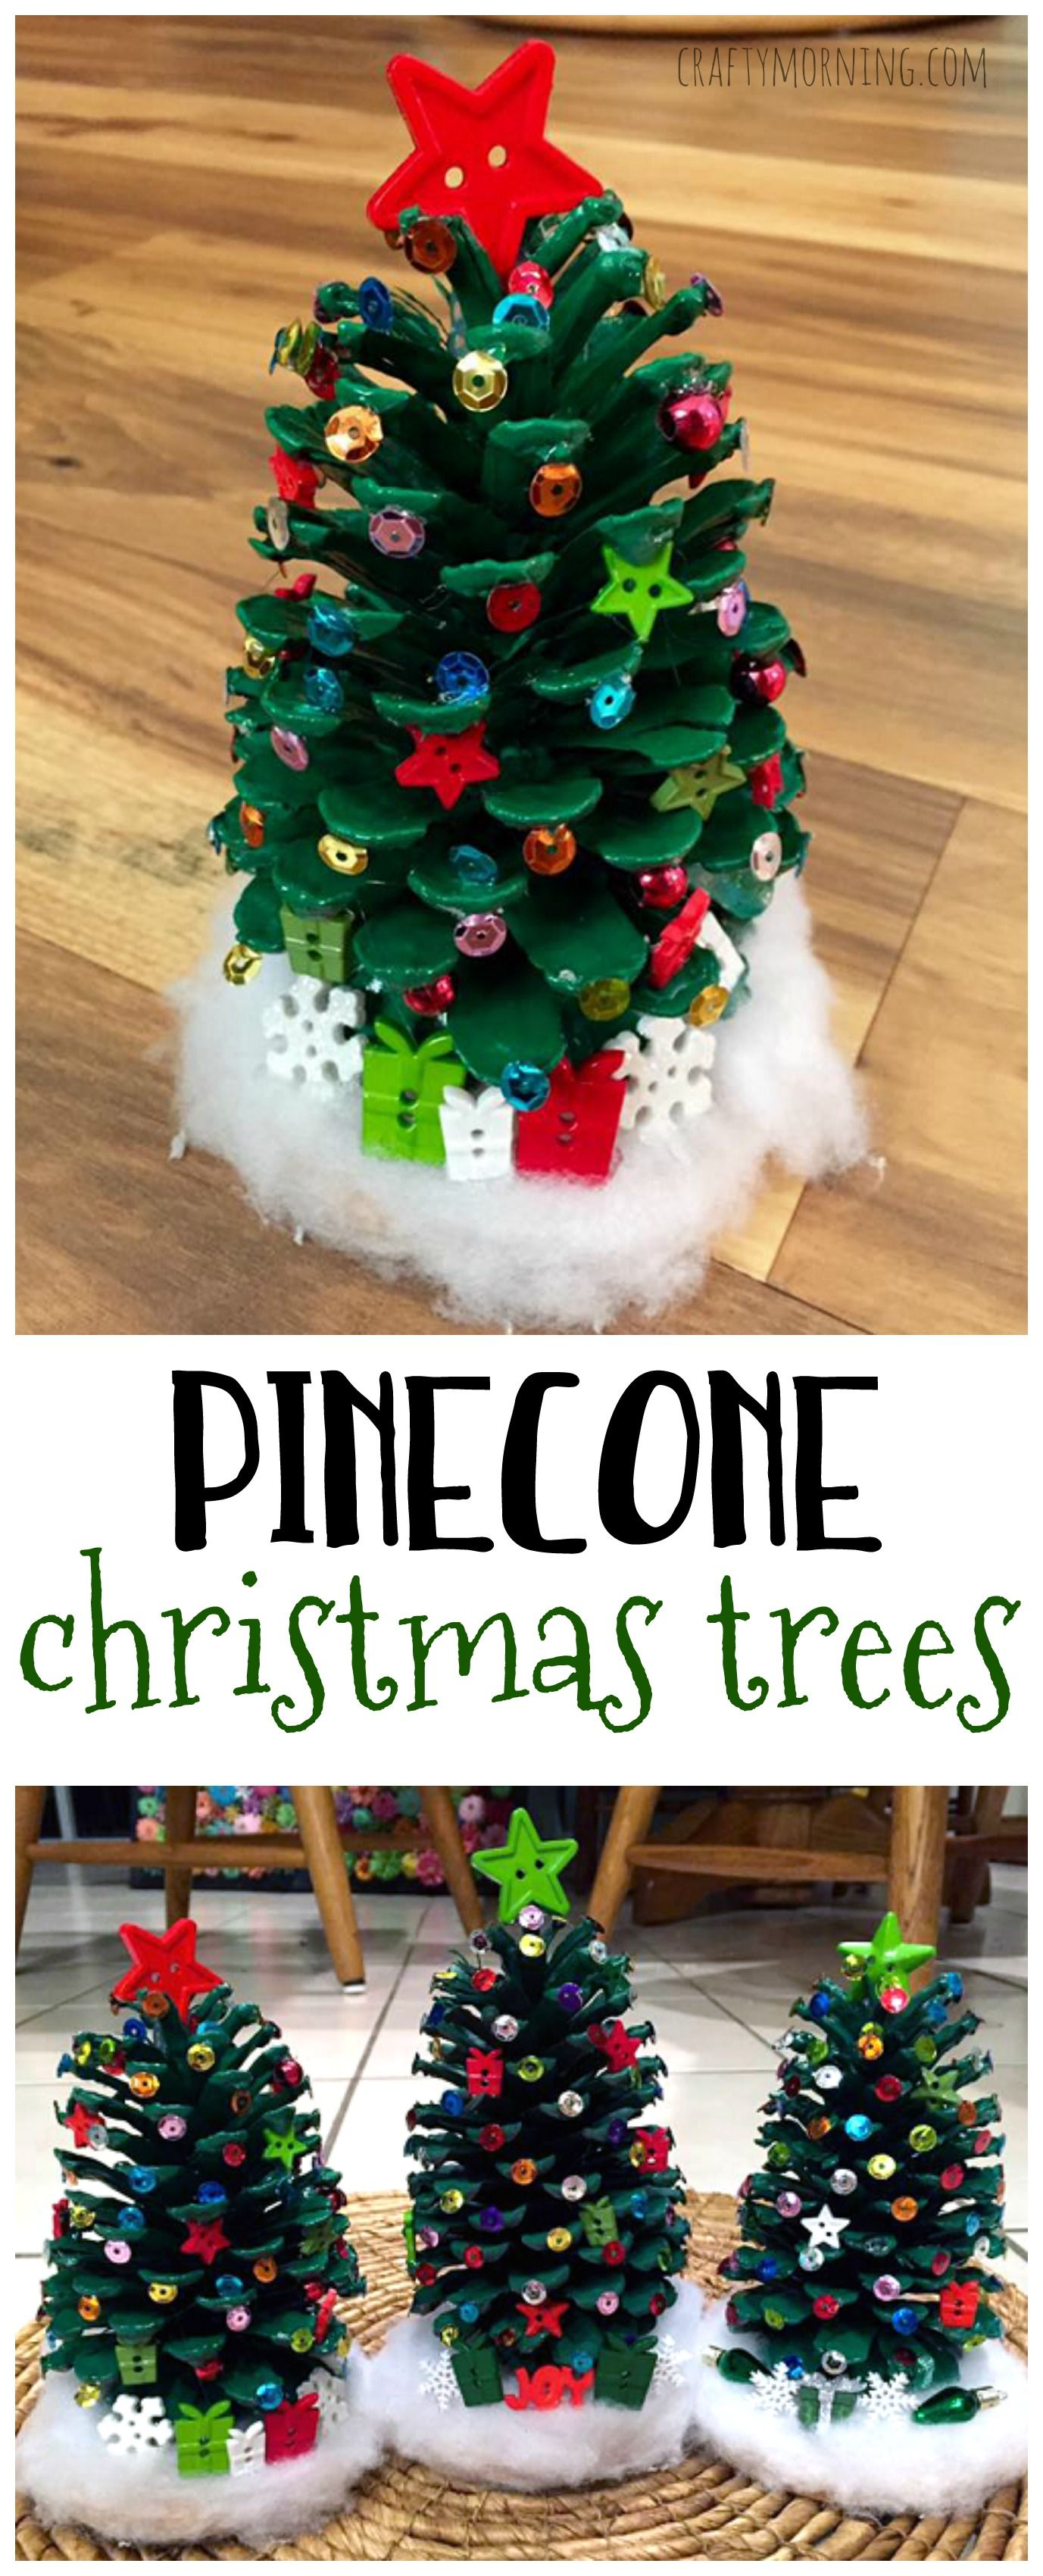 Make Adorable Pinecone Christmas Trees For A Christmas Kids Craft